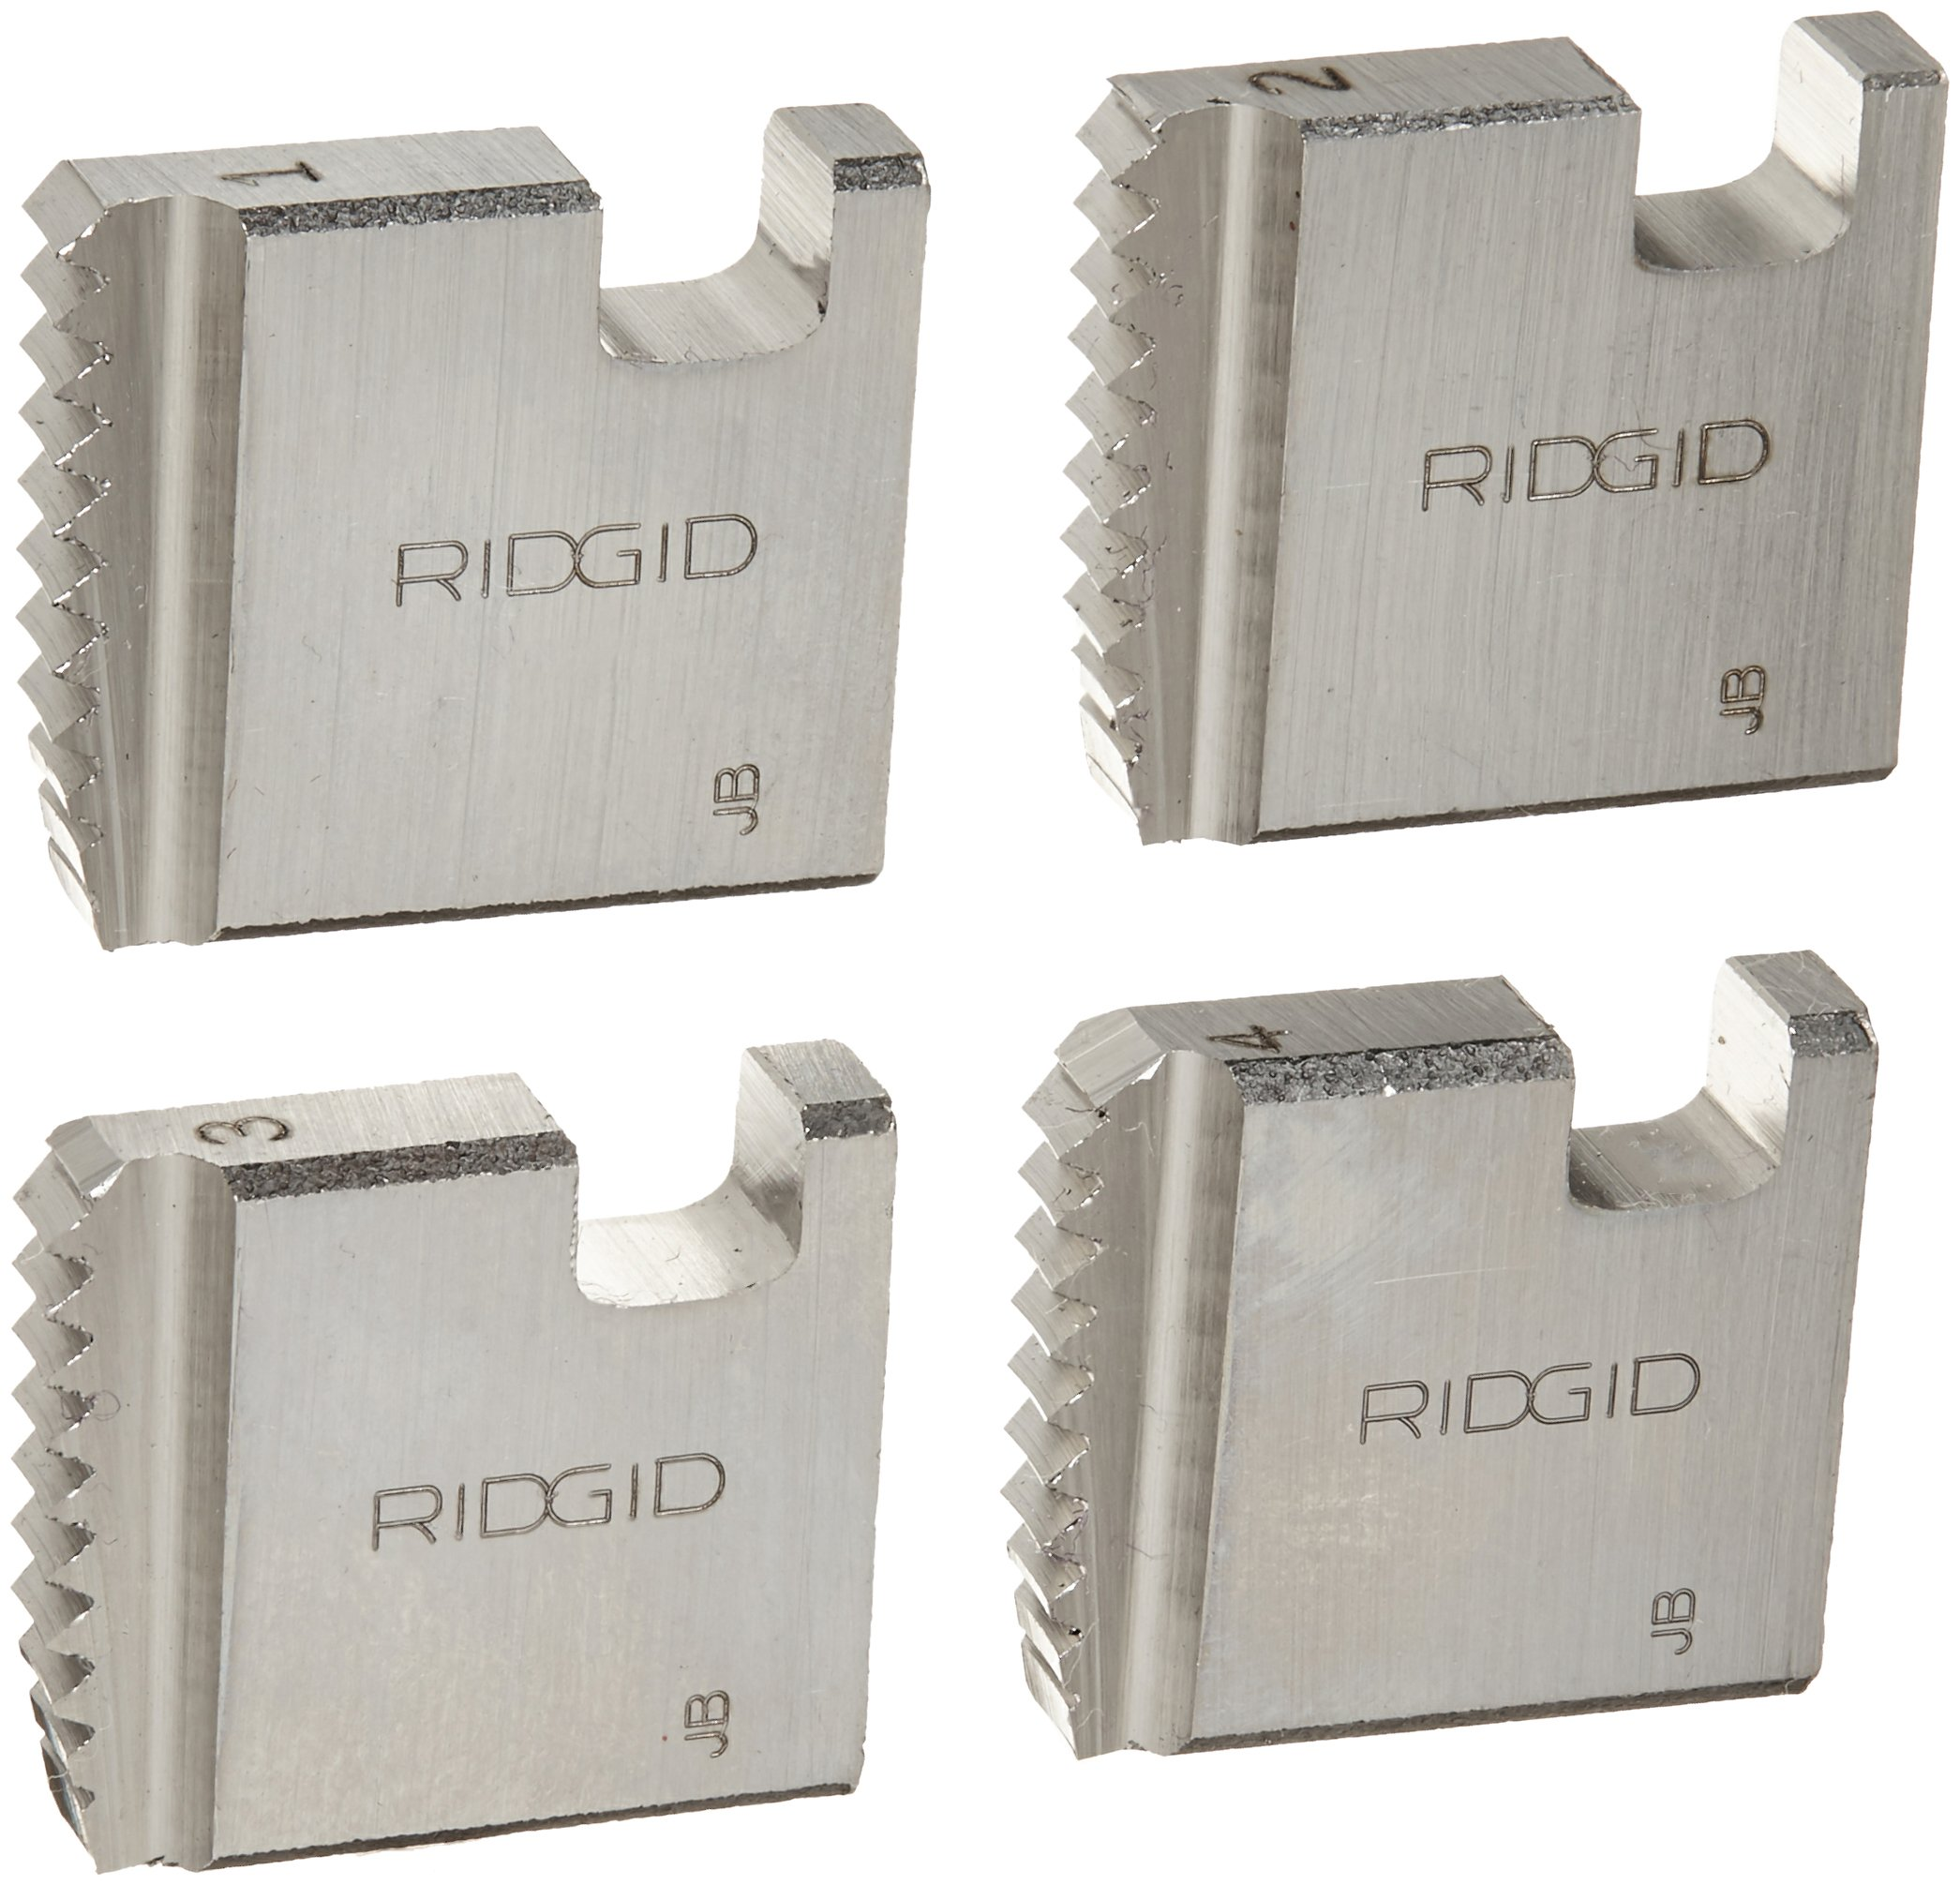 RIDGID 37835 Manual Threader Pipe Dies, Right-Handed Alloy NPT Pipe Dies with Nominal Pipe Size of 1-Inch for Ratchet Threaders or 3-Way Pipe Threaders by Ridgid